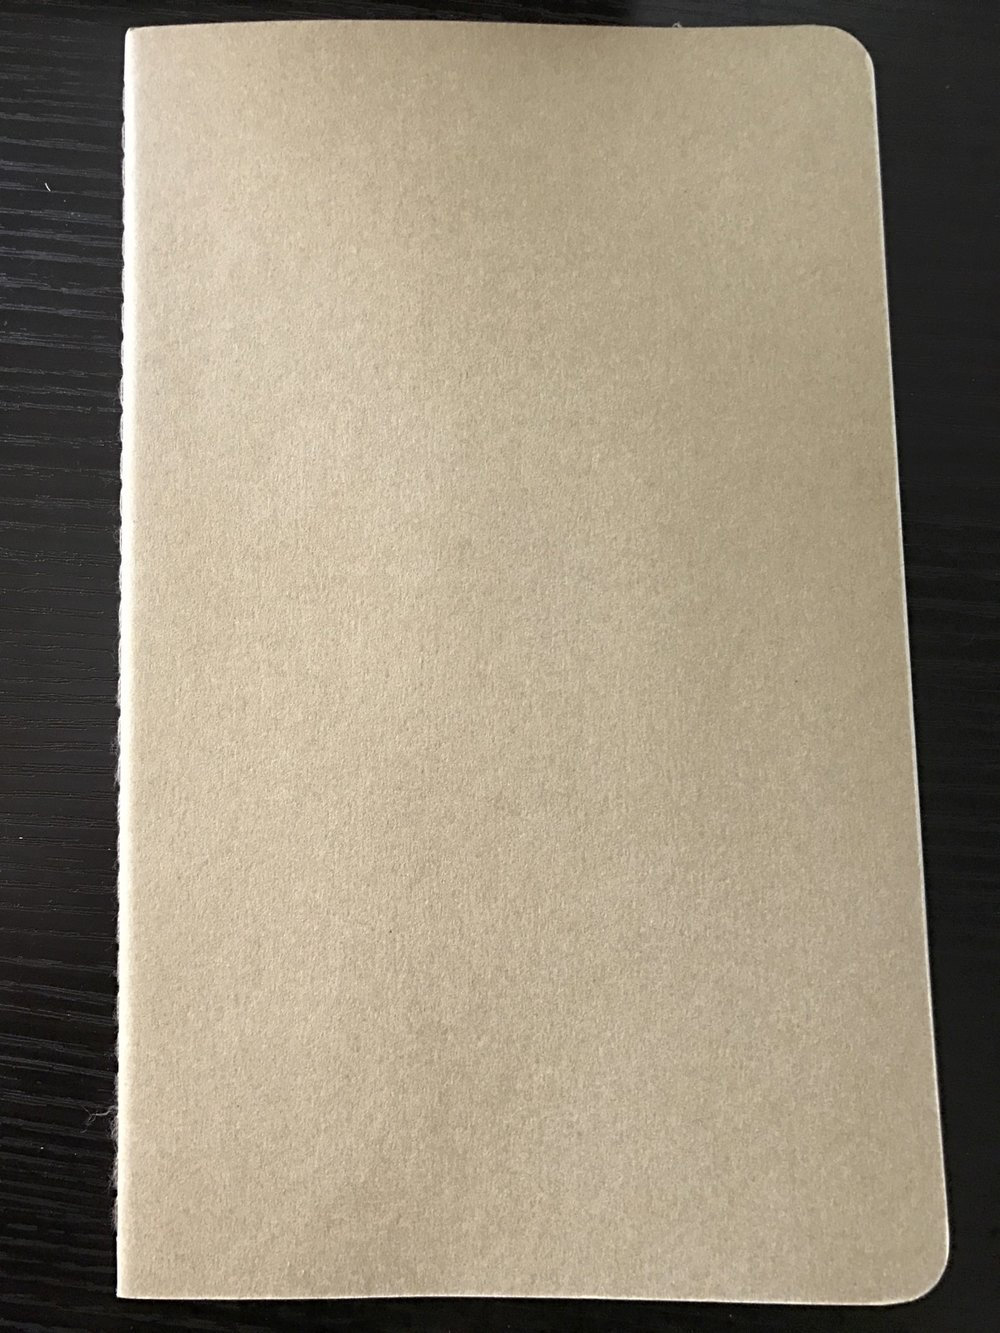 The Moleskine notebook has the most generic appearance.